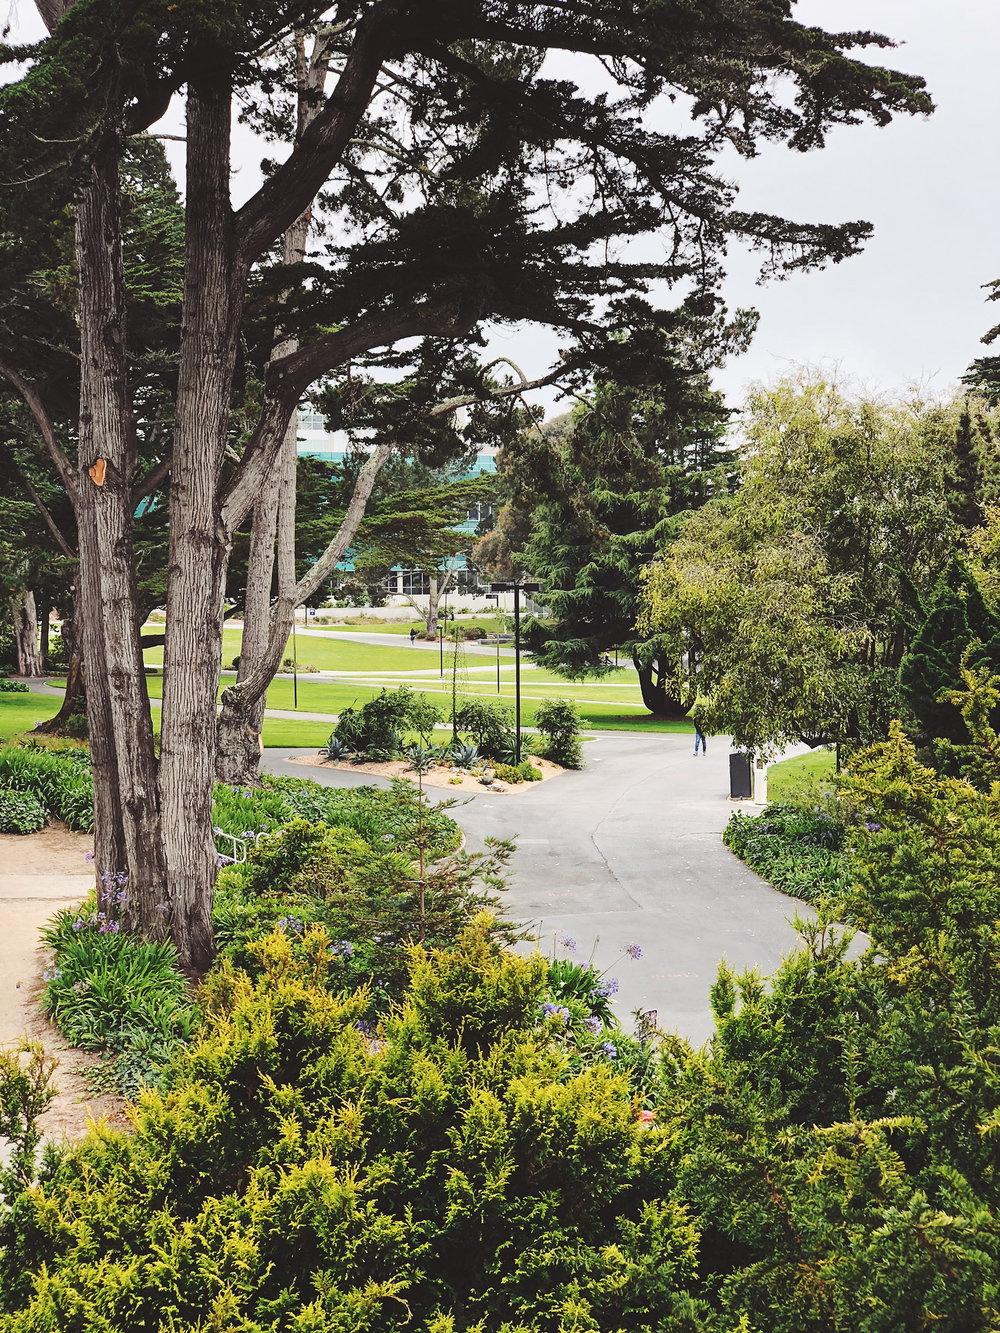 The campus is a veritable jungle.